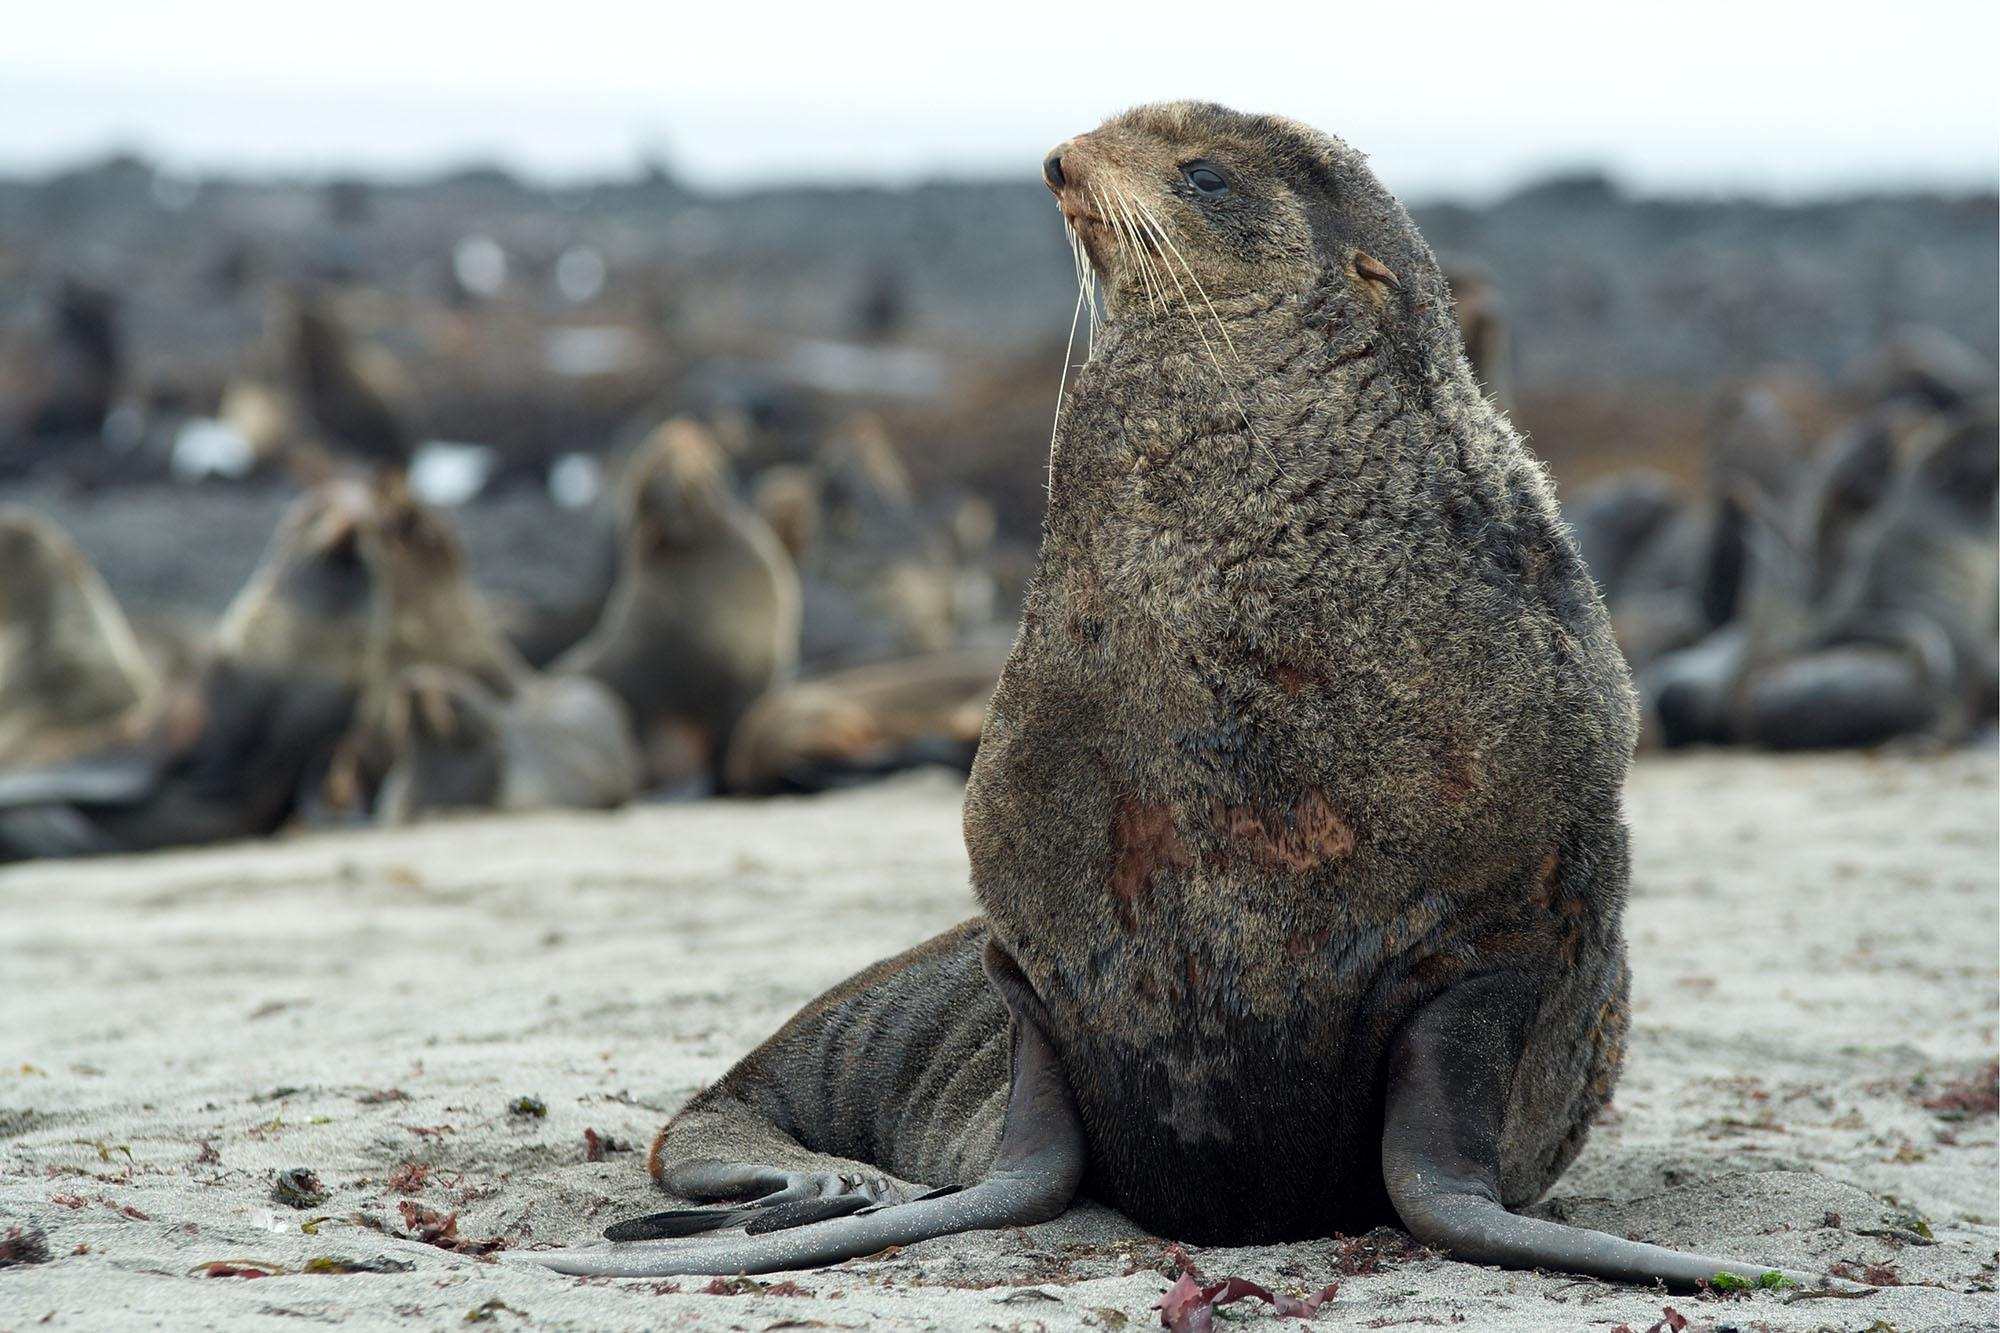 Northern fur seal in the wild (DPS/Shutterstock)